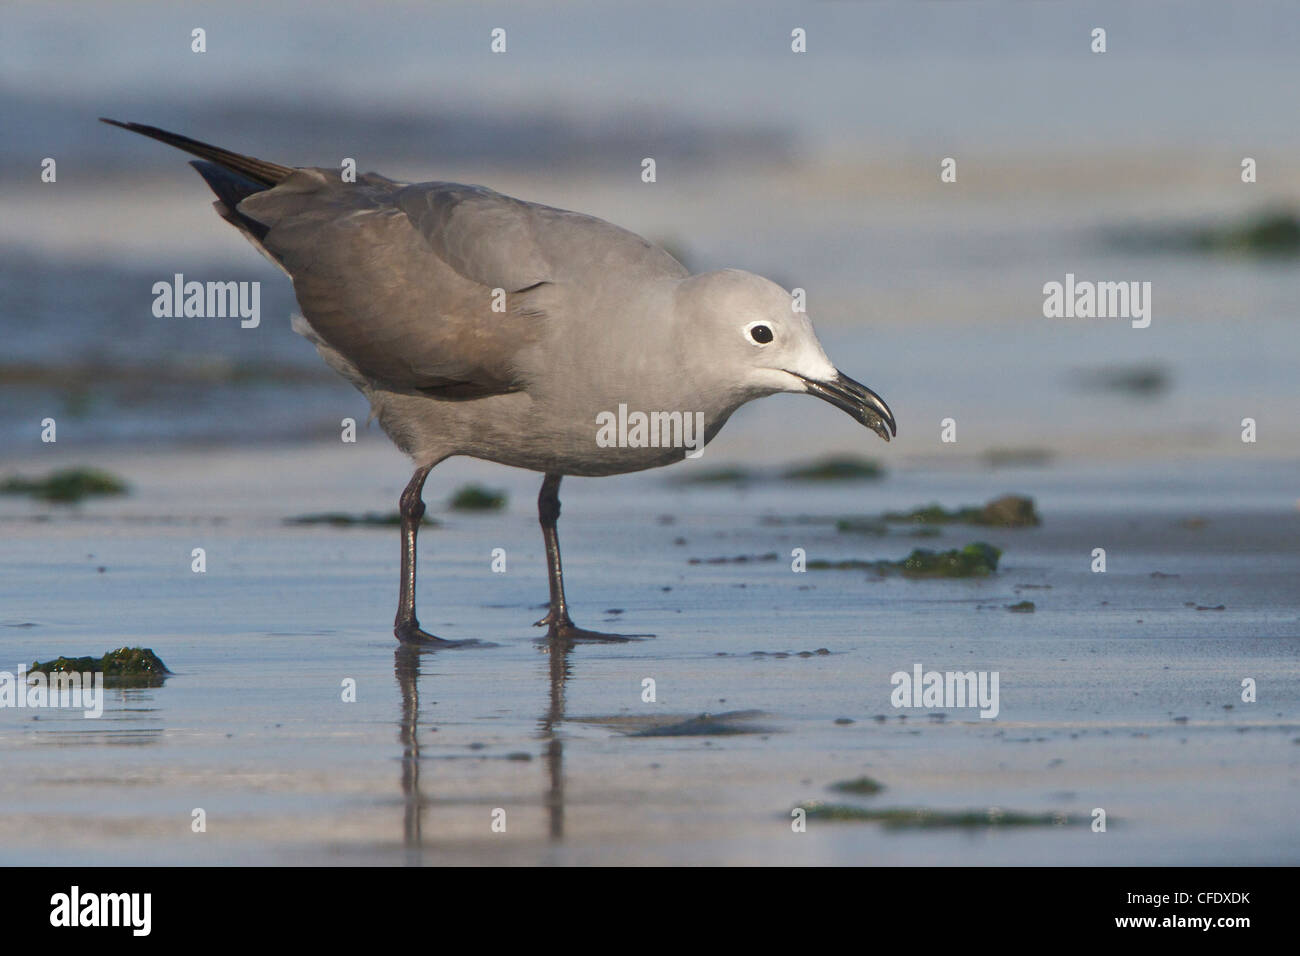 Gray Gull (Larus modestus) feeding along the shoreline in Peru. - Stock Image